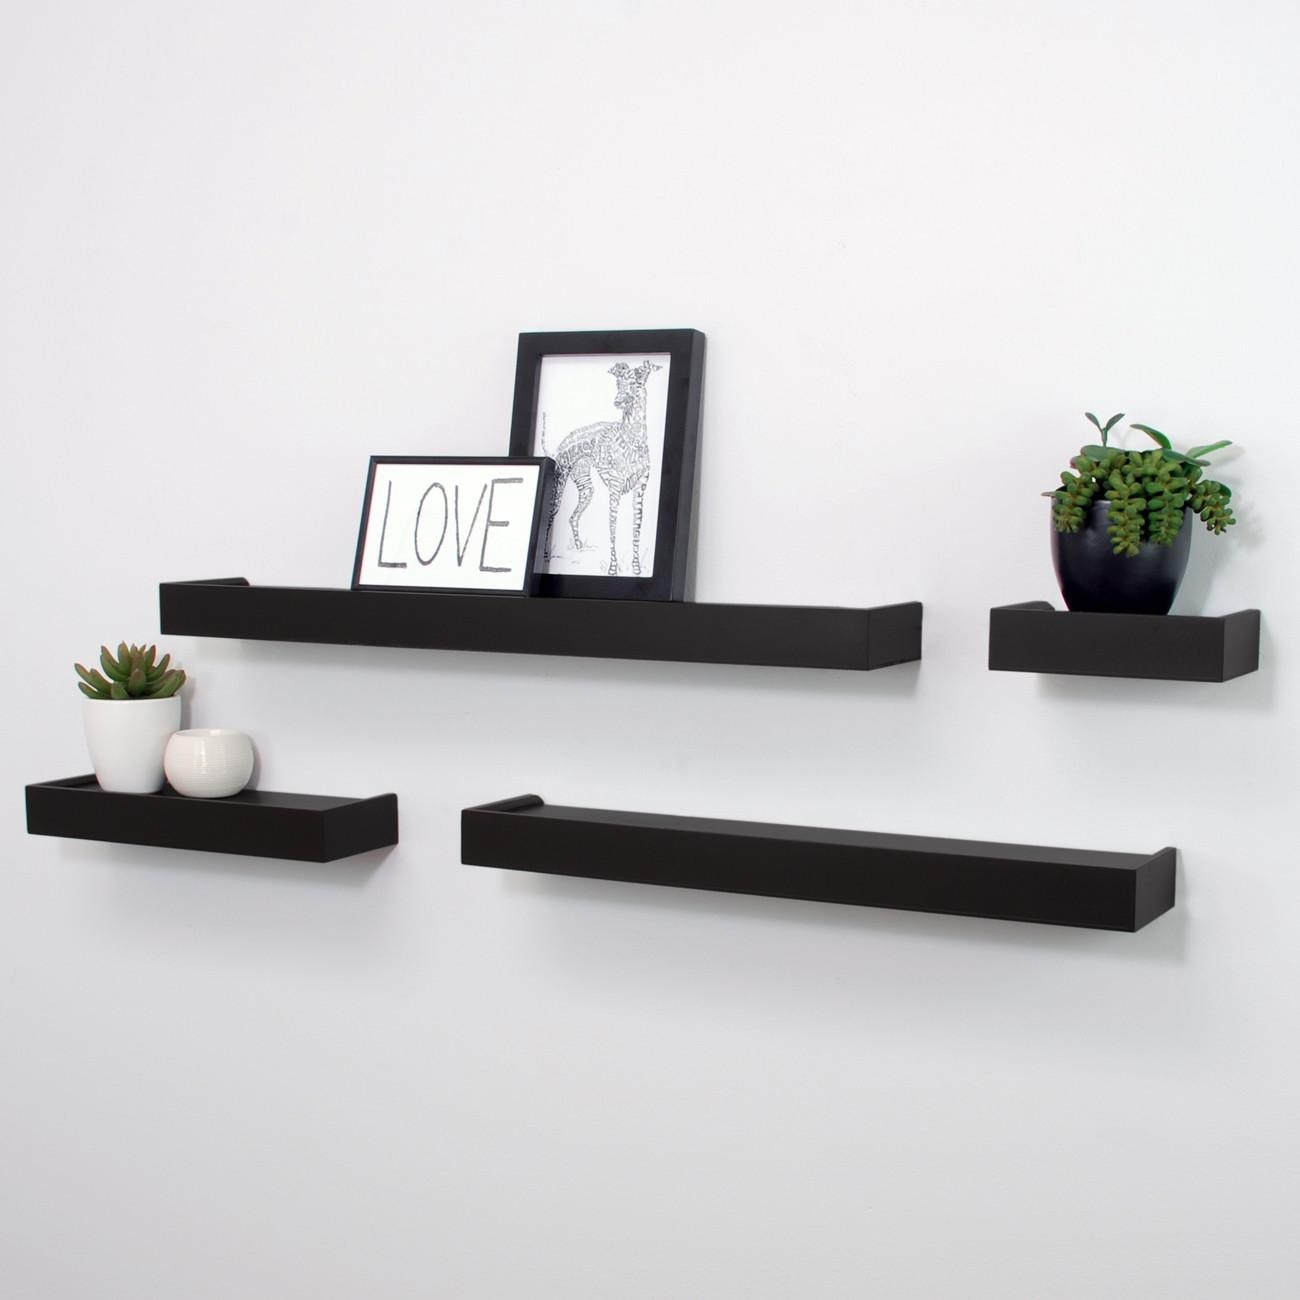 Floating Wall Shelves Black Corner Wall Shelf Black Floating Intended For Floating Wall Shelves (#6 of 12)